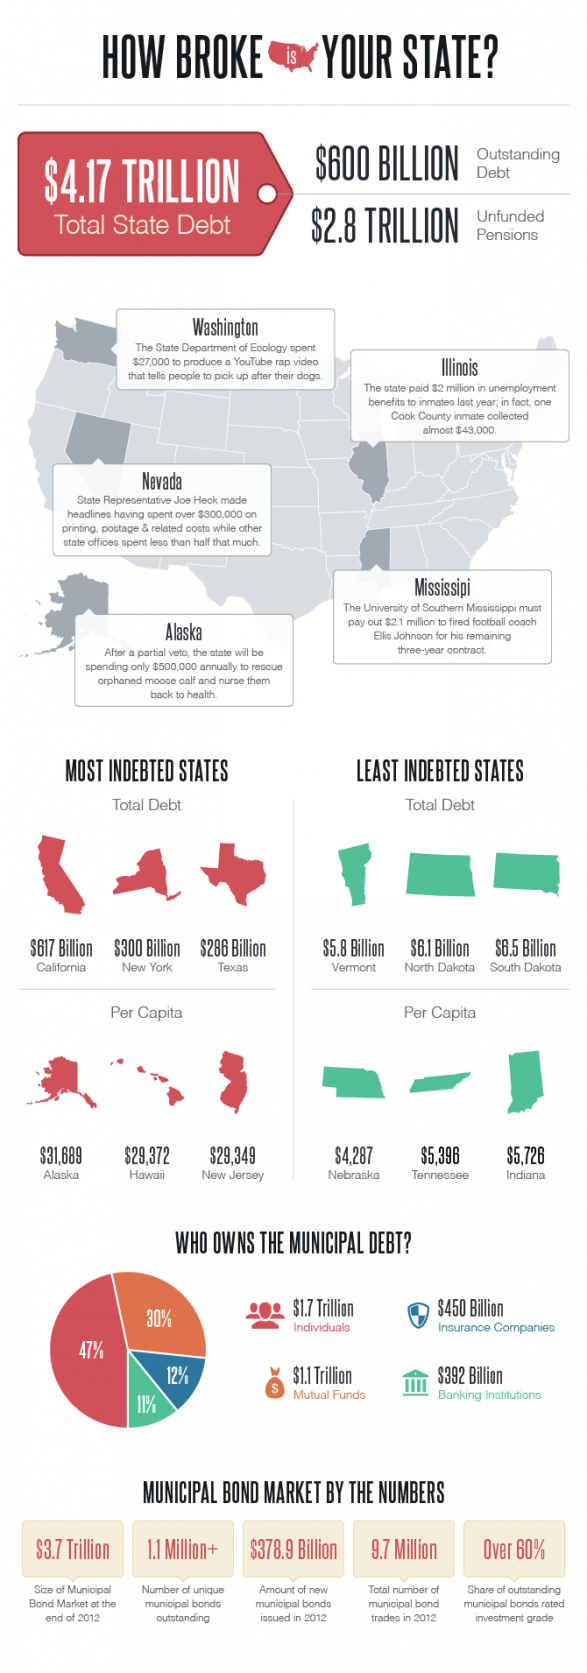 How Broke Is Your State?